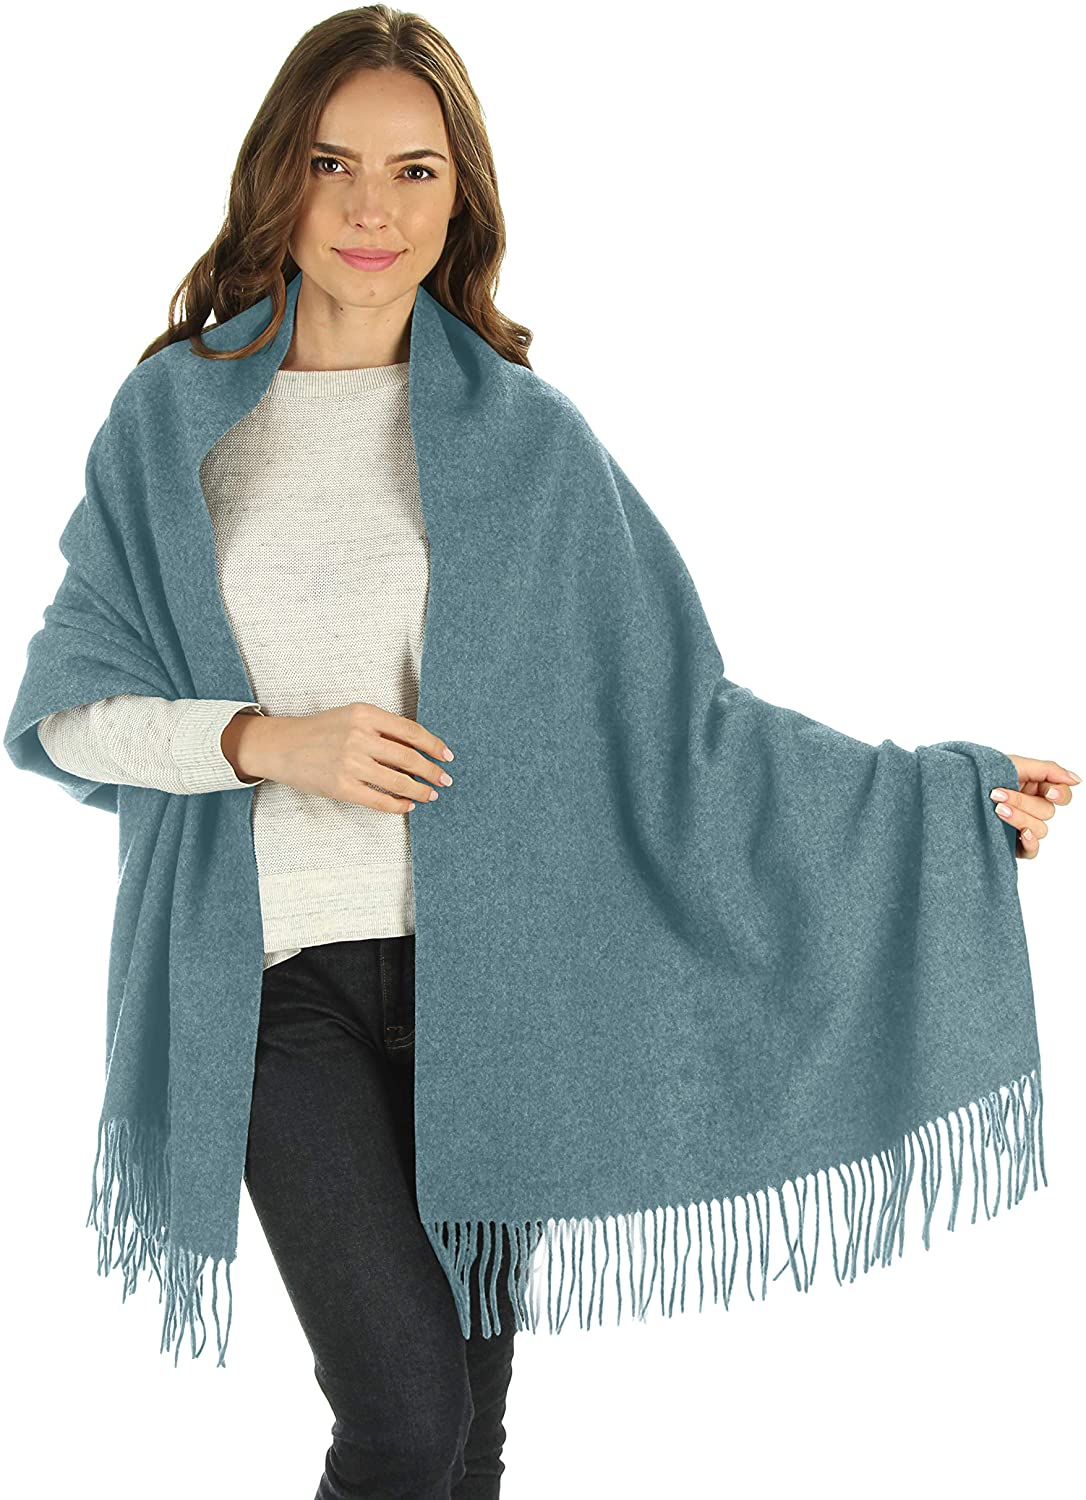 Silky Toes Luxurious Women's Thick Wool Pashmina Warm Winter Scarf Wrap Shawl